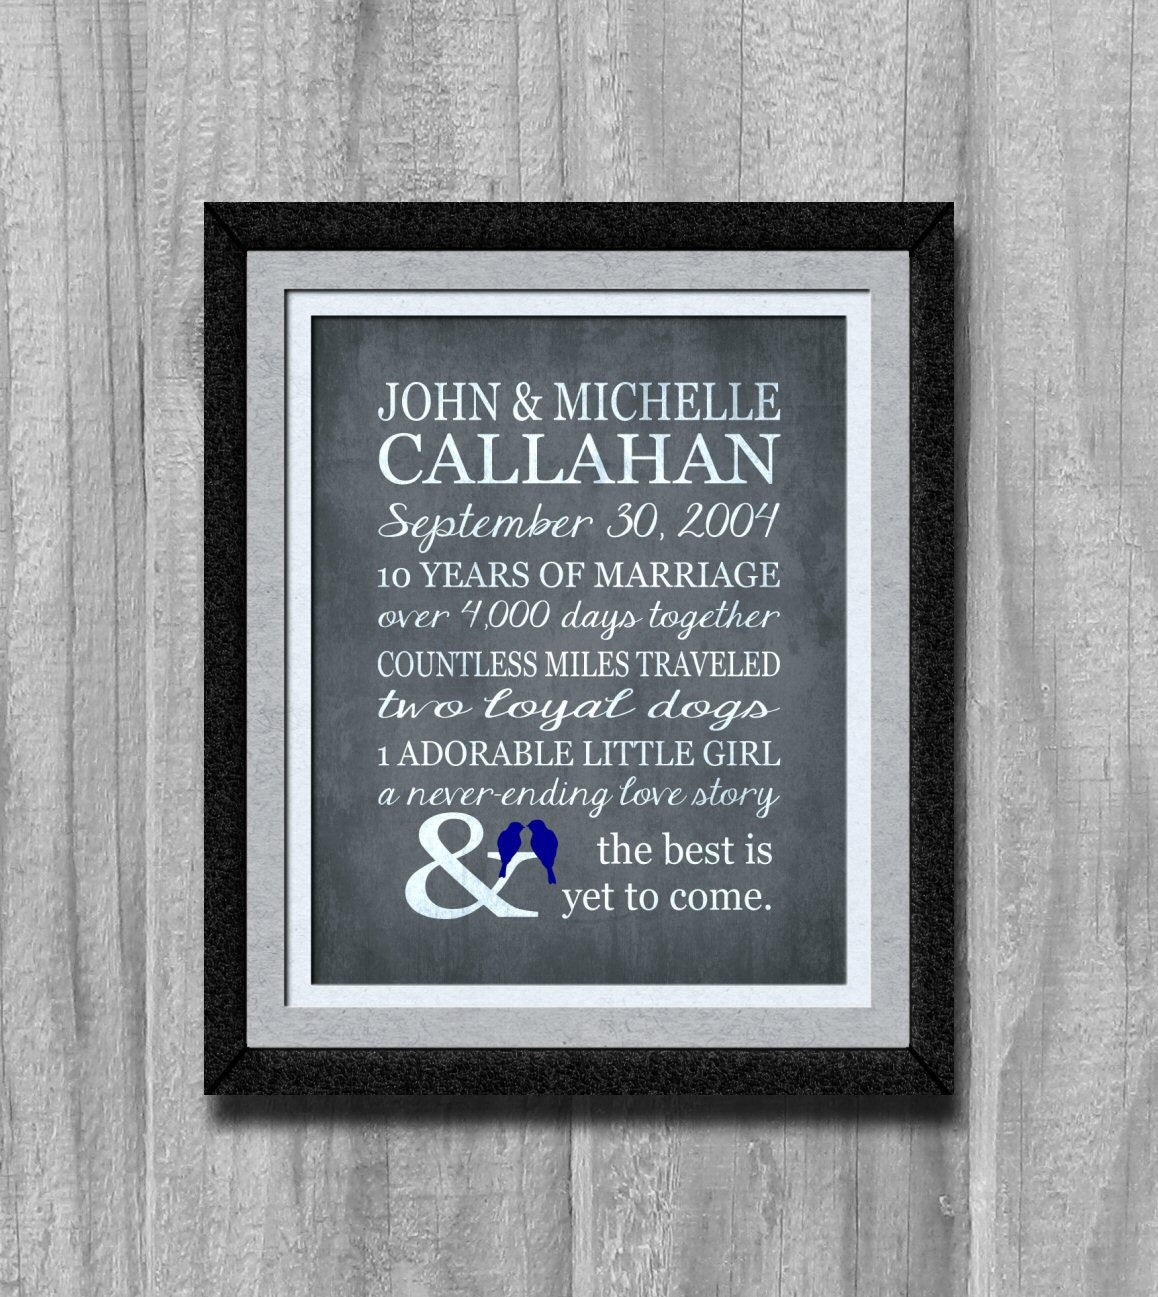 Personal Gifts For Your Husband: Personalized Anniversary Gift Our Love Story Gift For Husband